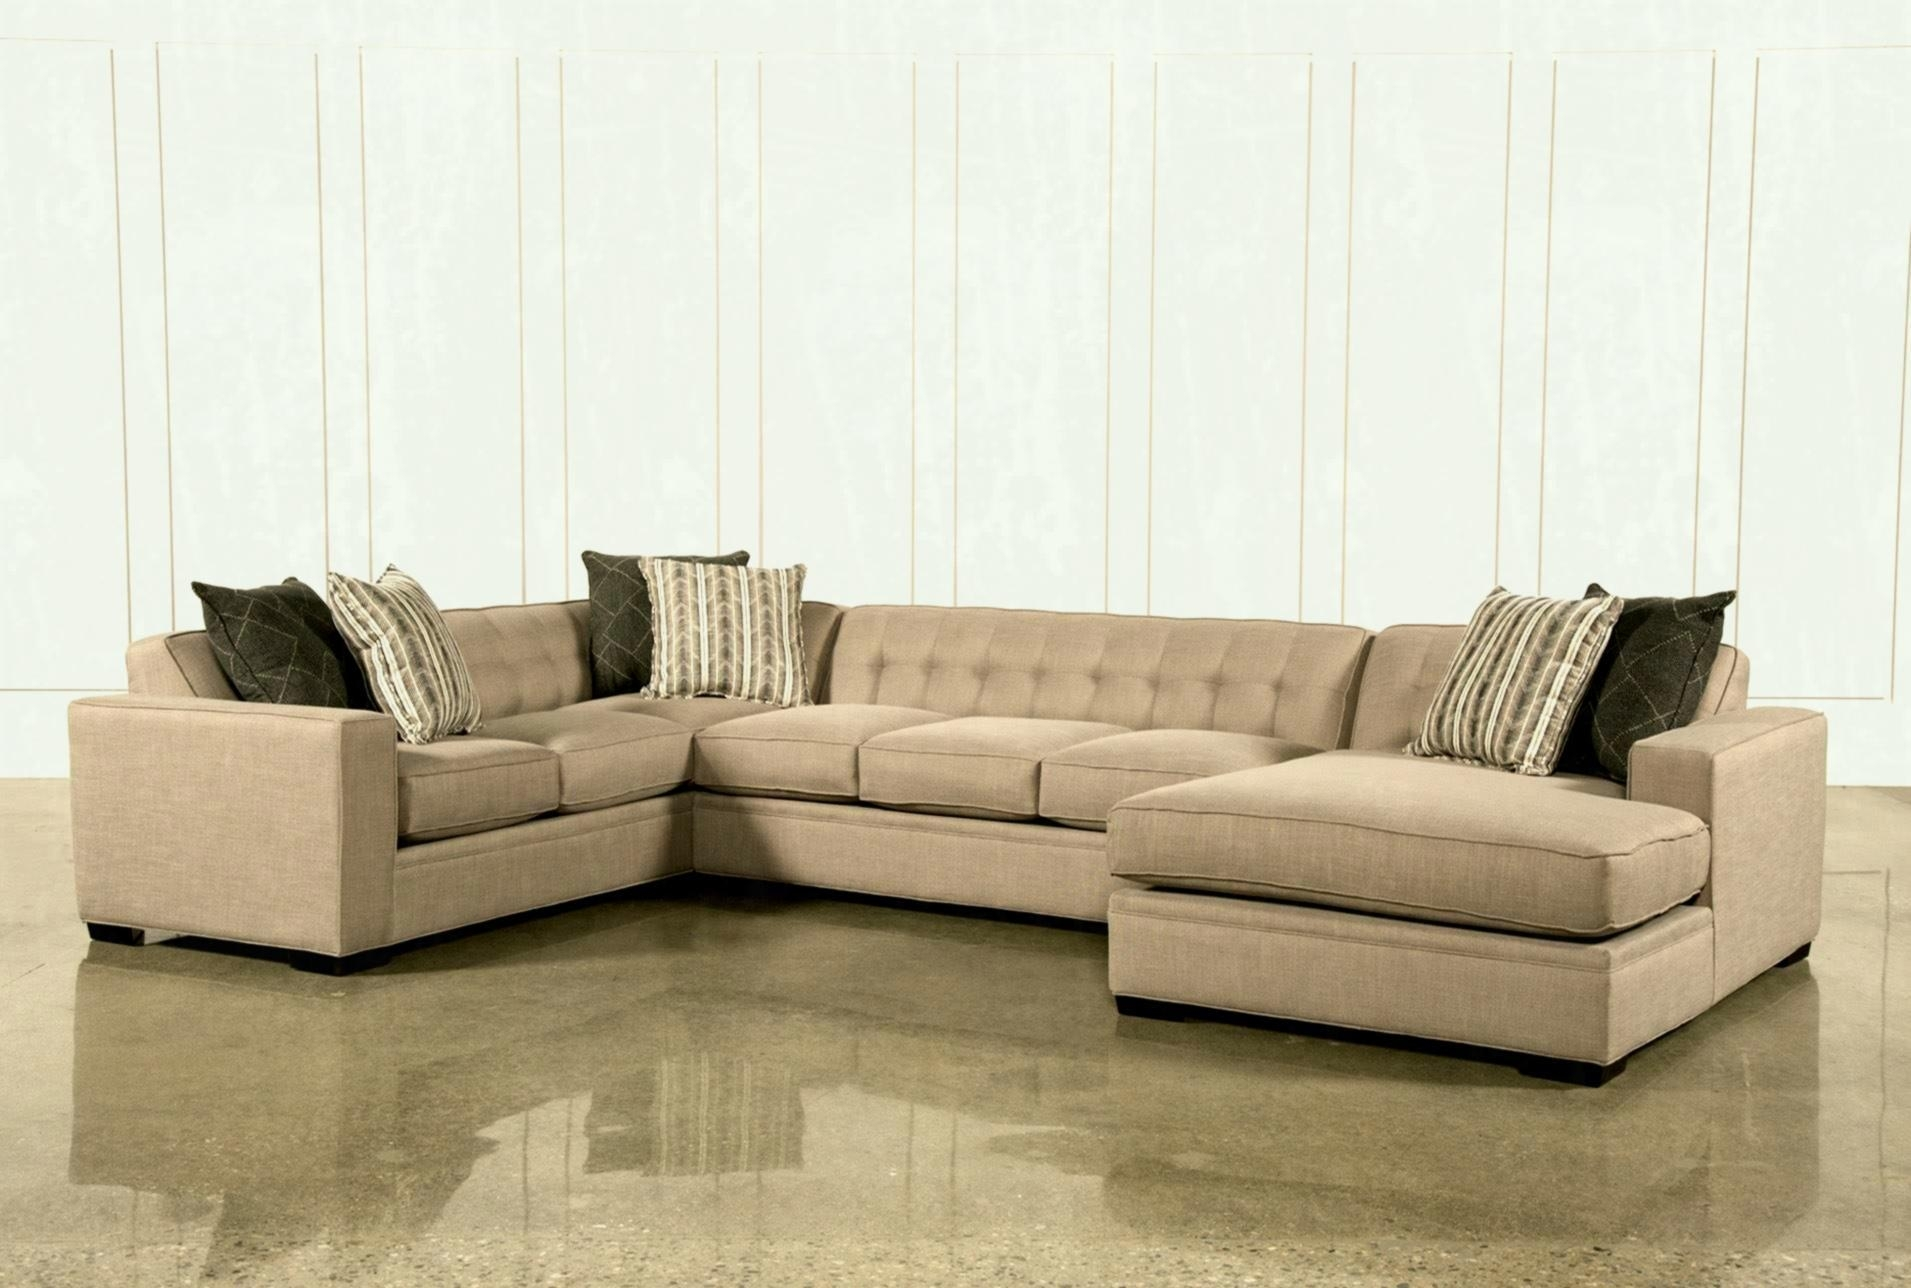 Living Spaces Sectional - Tidex regarding Aspen 2 Piece Sectionals With Laf Chaise (Image 18 of 30)